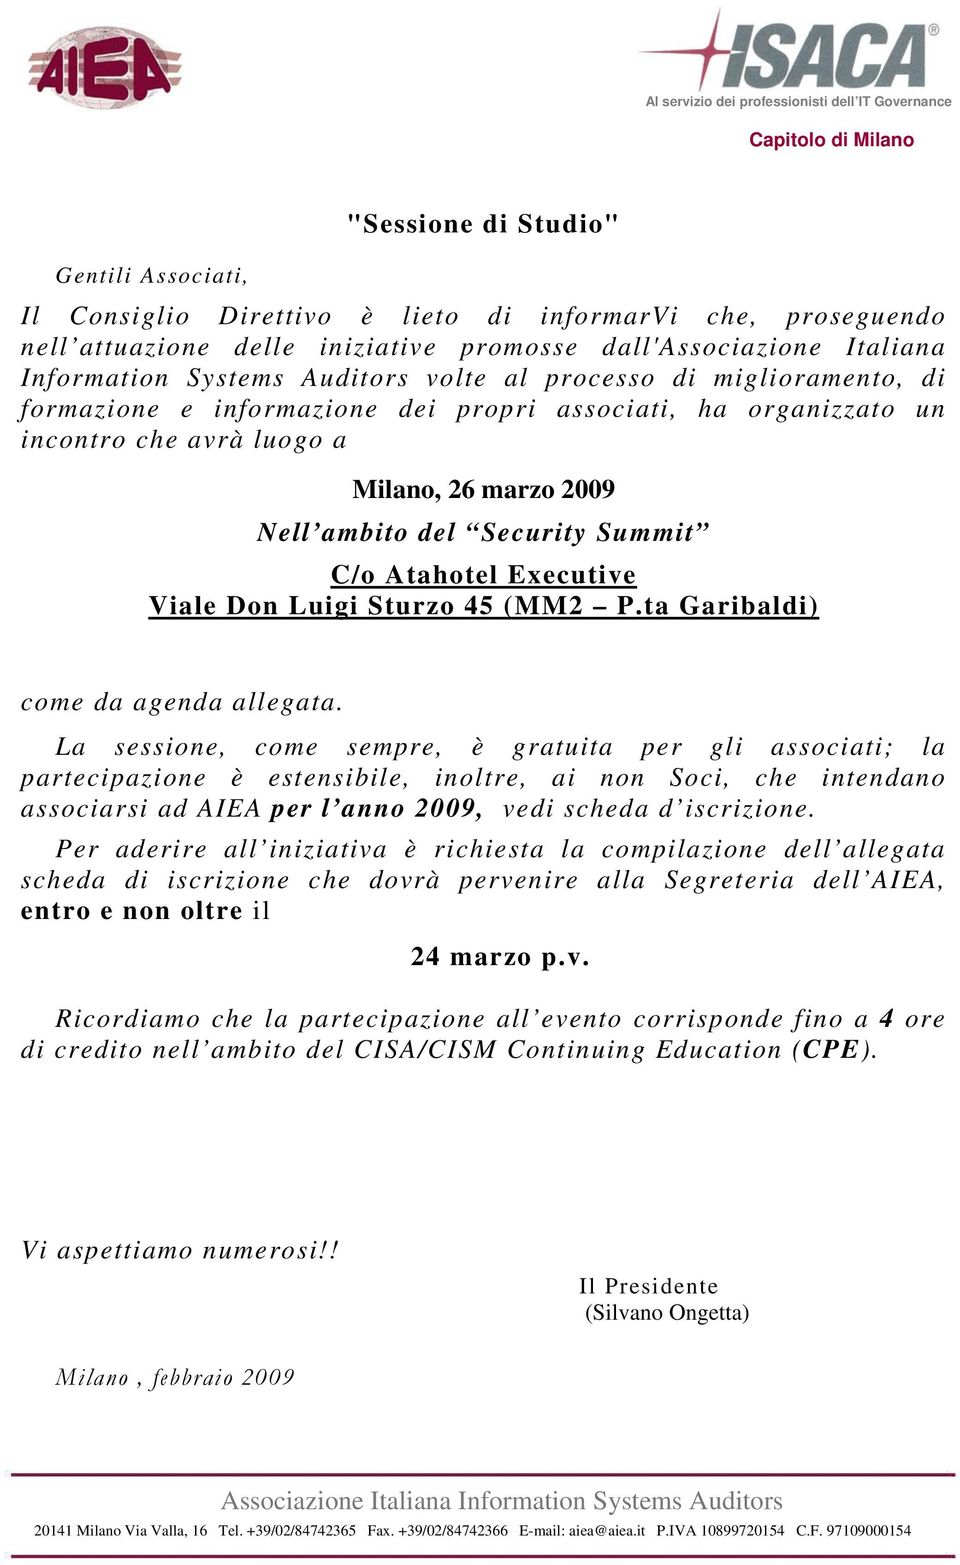 Executive Viale Don Luigi Sturzo 45 (MM2 P.ta Garibaldi) come da agenda allegata.